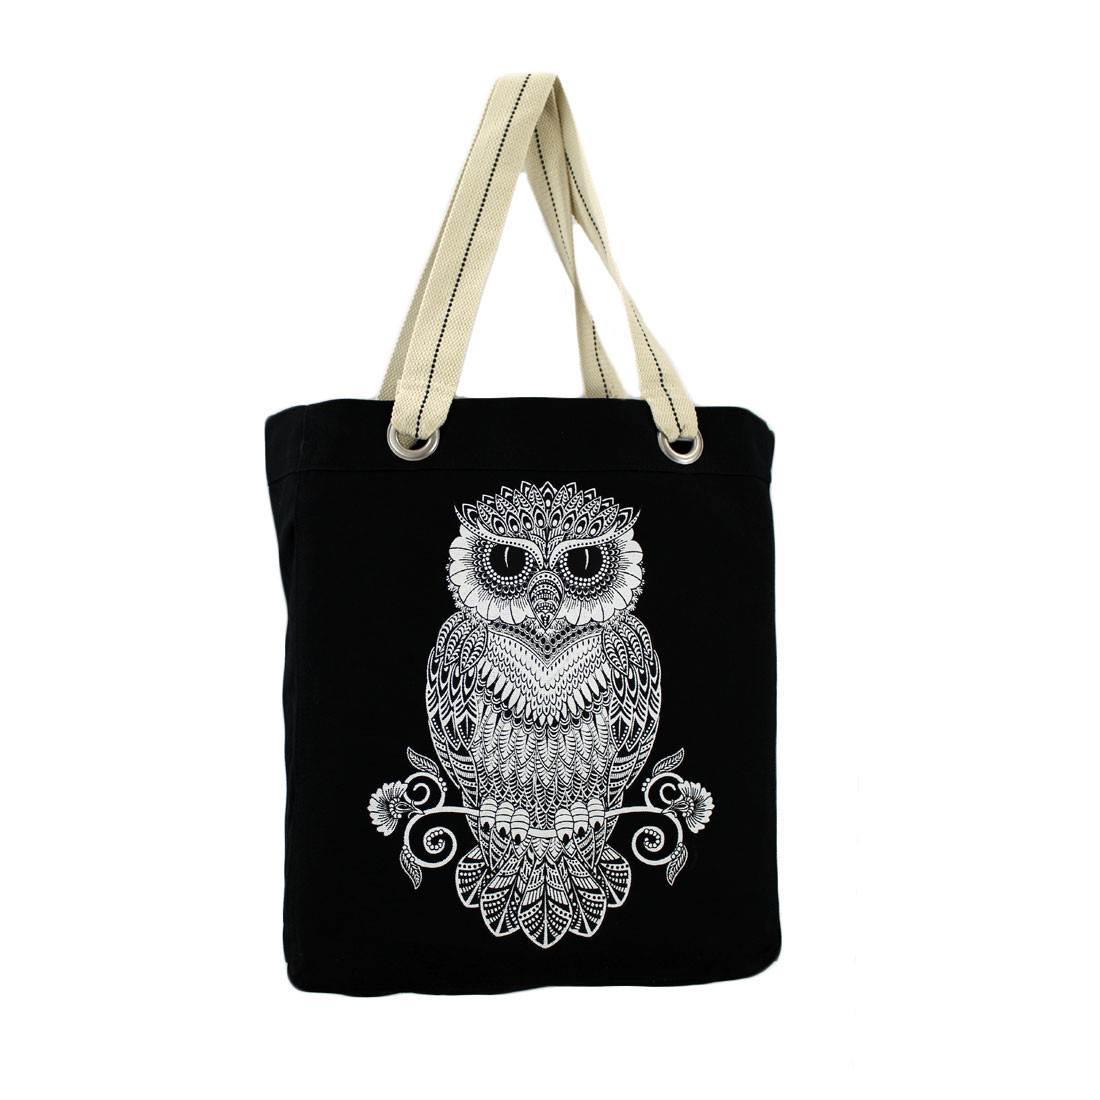 Owl tote bag.  Great to use as a beach bag.